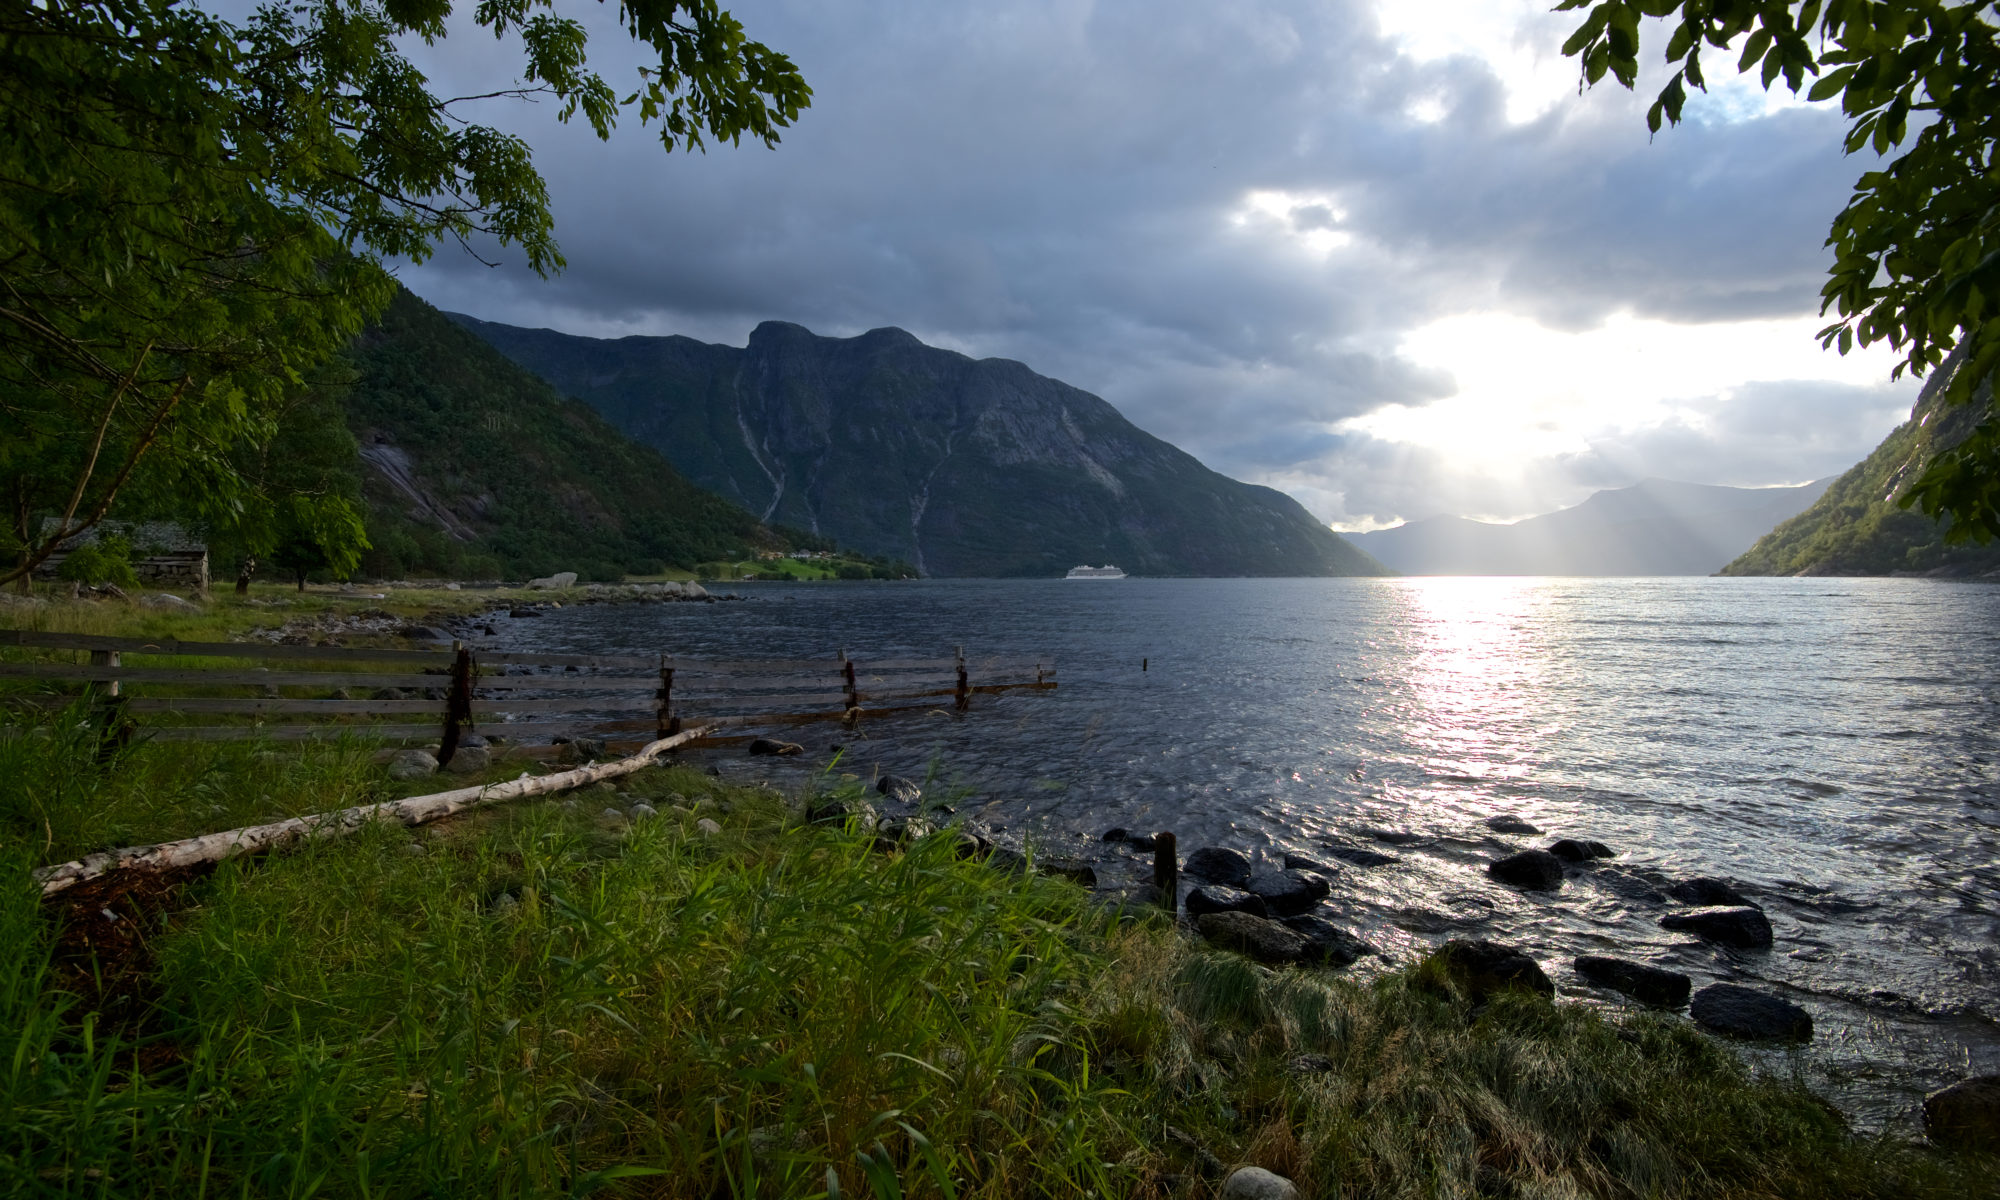 Simafjorden and Eidfjord - The innermost part of the Hardangerfjord